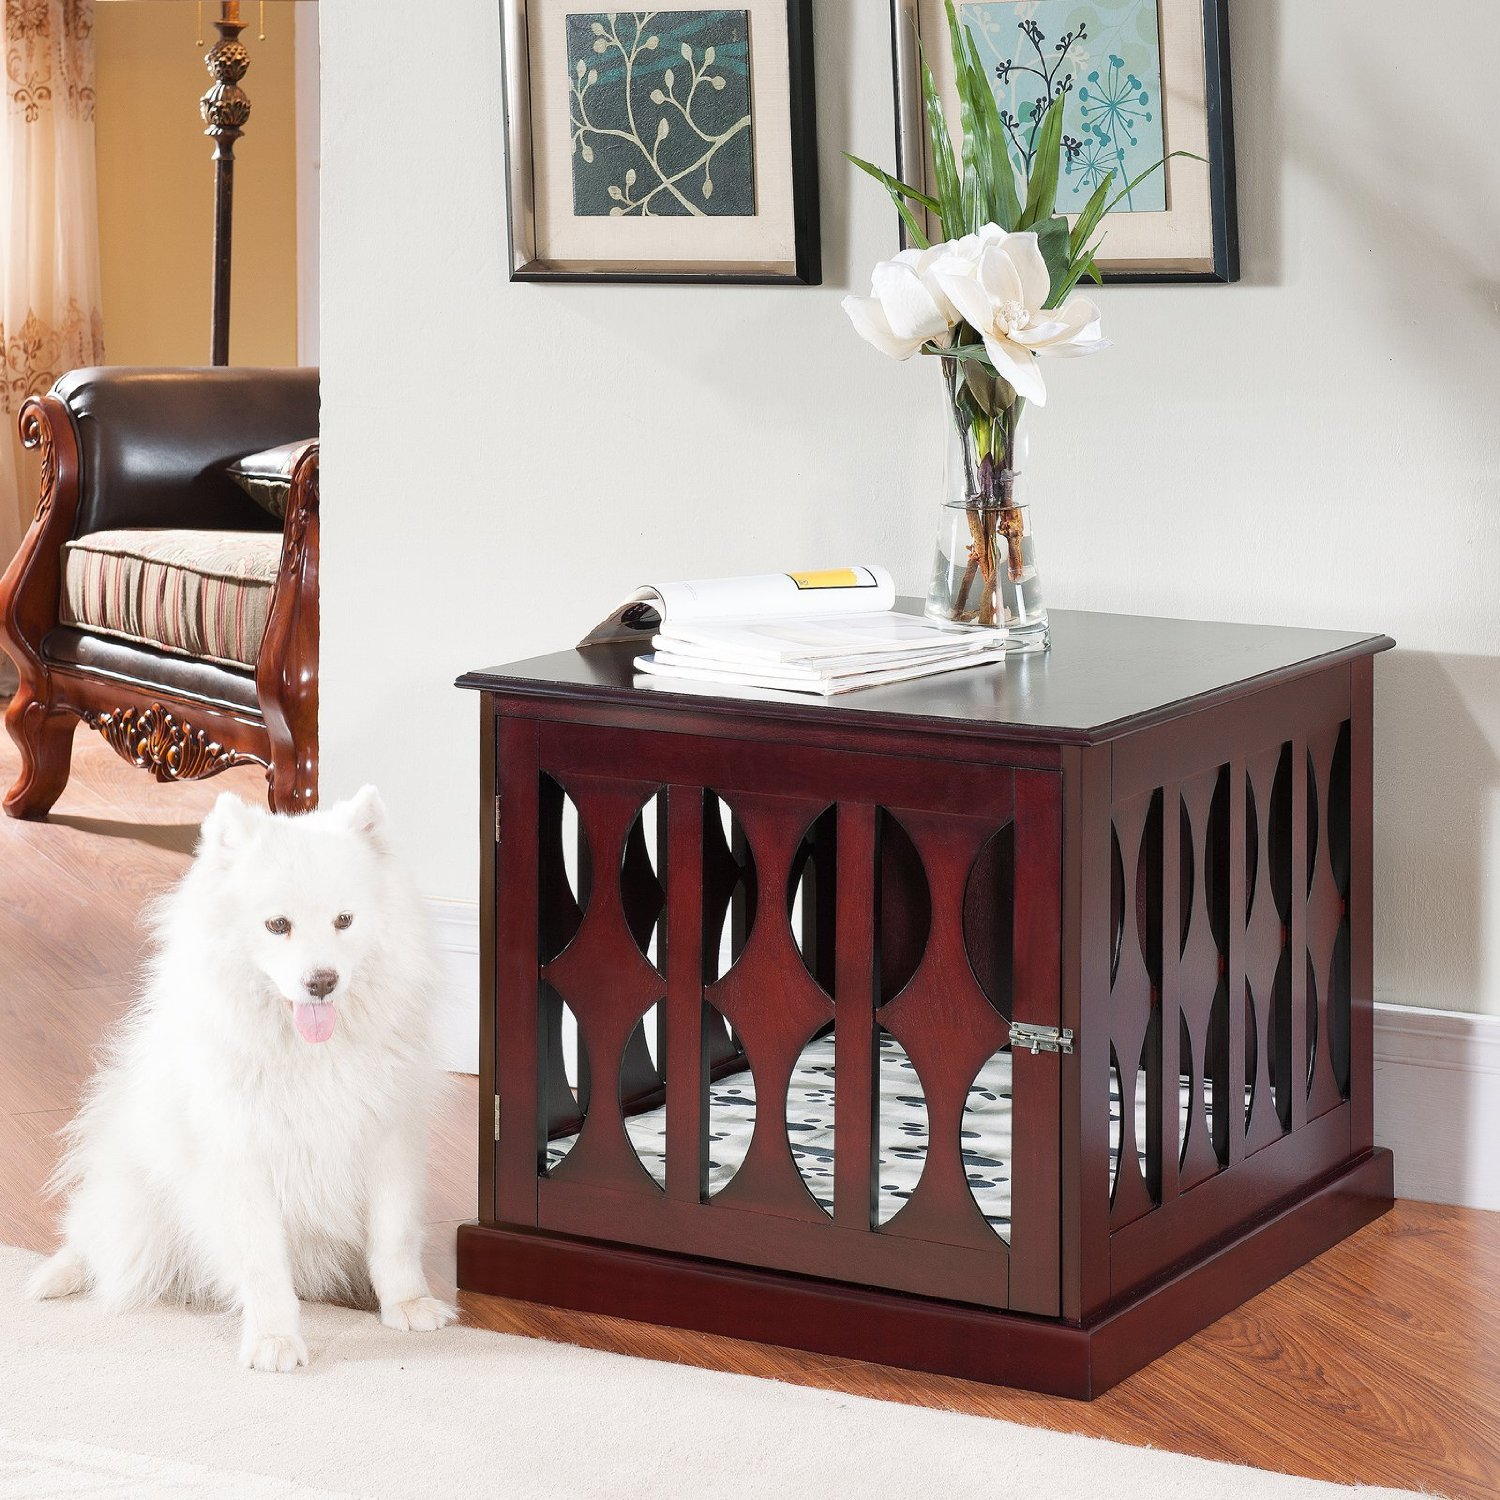 Total Fab Dog Crates That Look Like Furniture